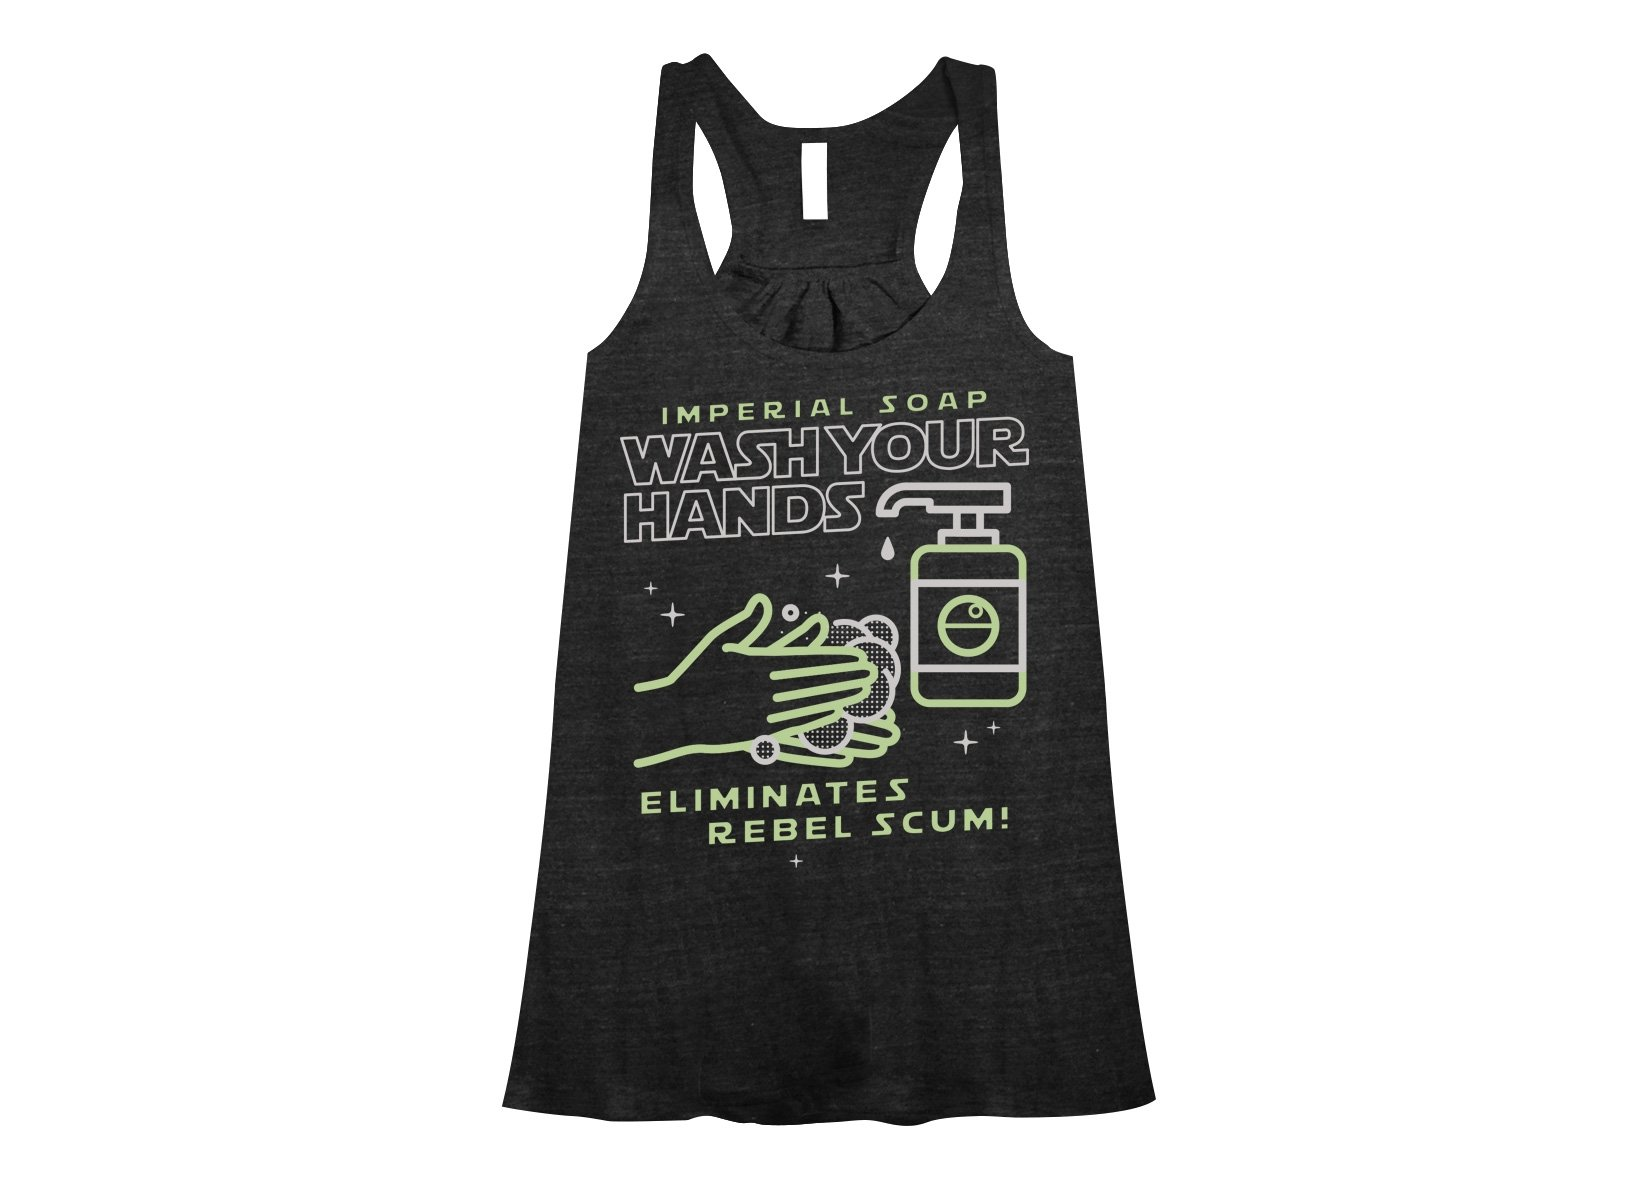 Imperial Soap on Womens Tanks T-Shirt